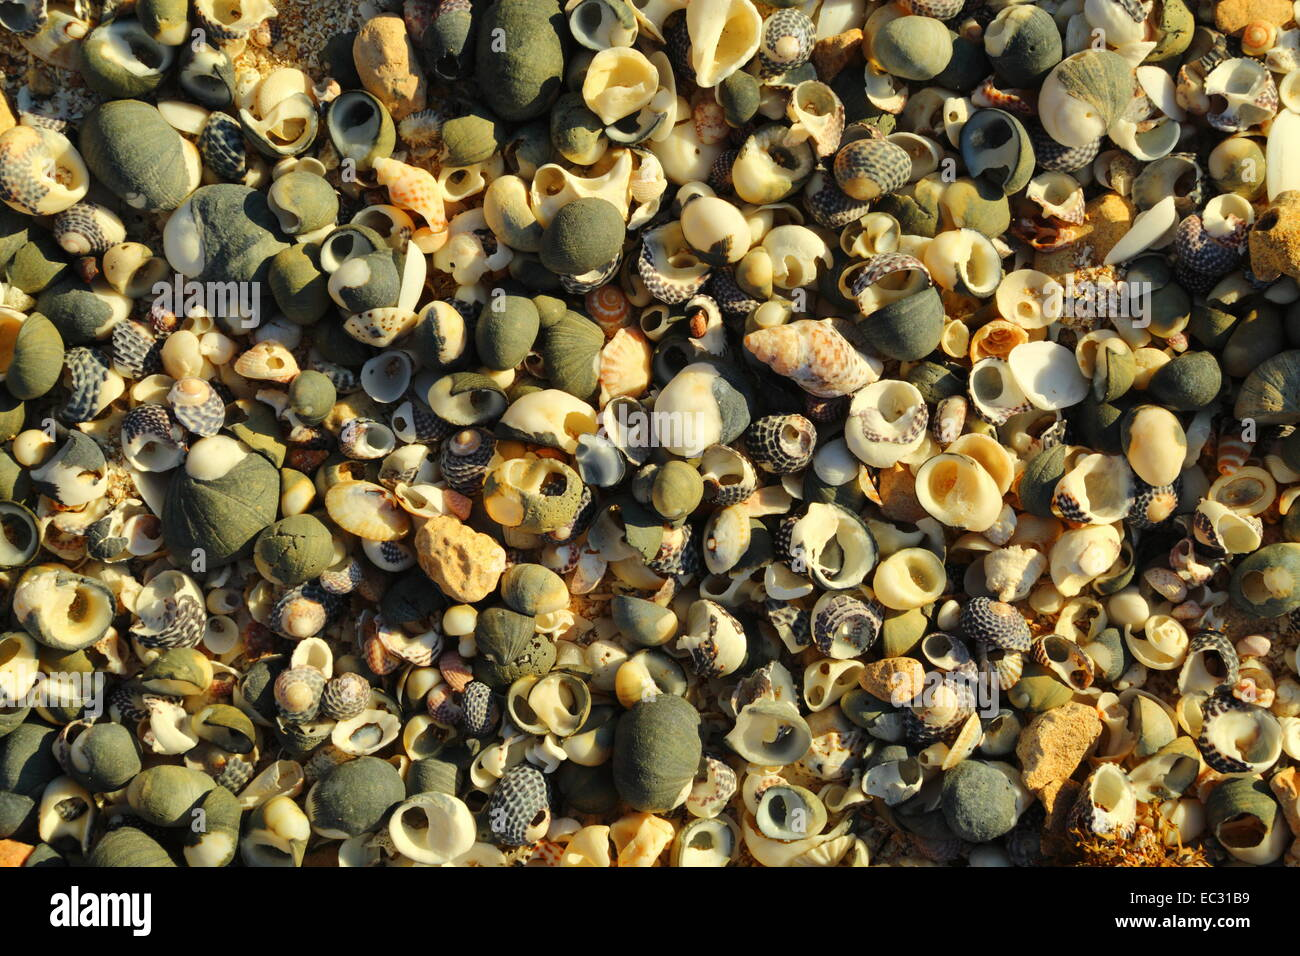 Assorted shells washed up on a beach at The Granites, Streaky Bay, South Australia. - Stock Image